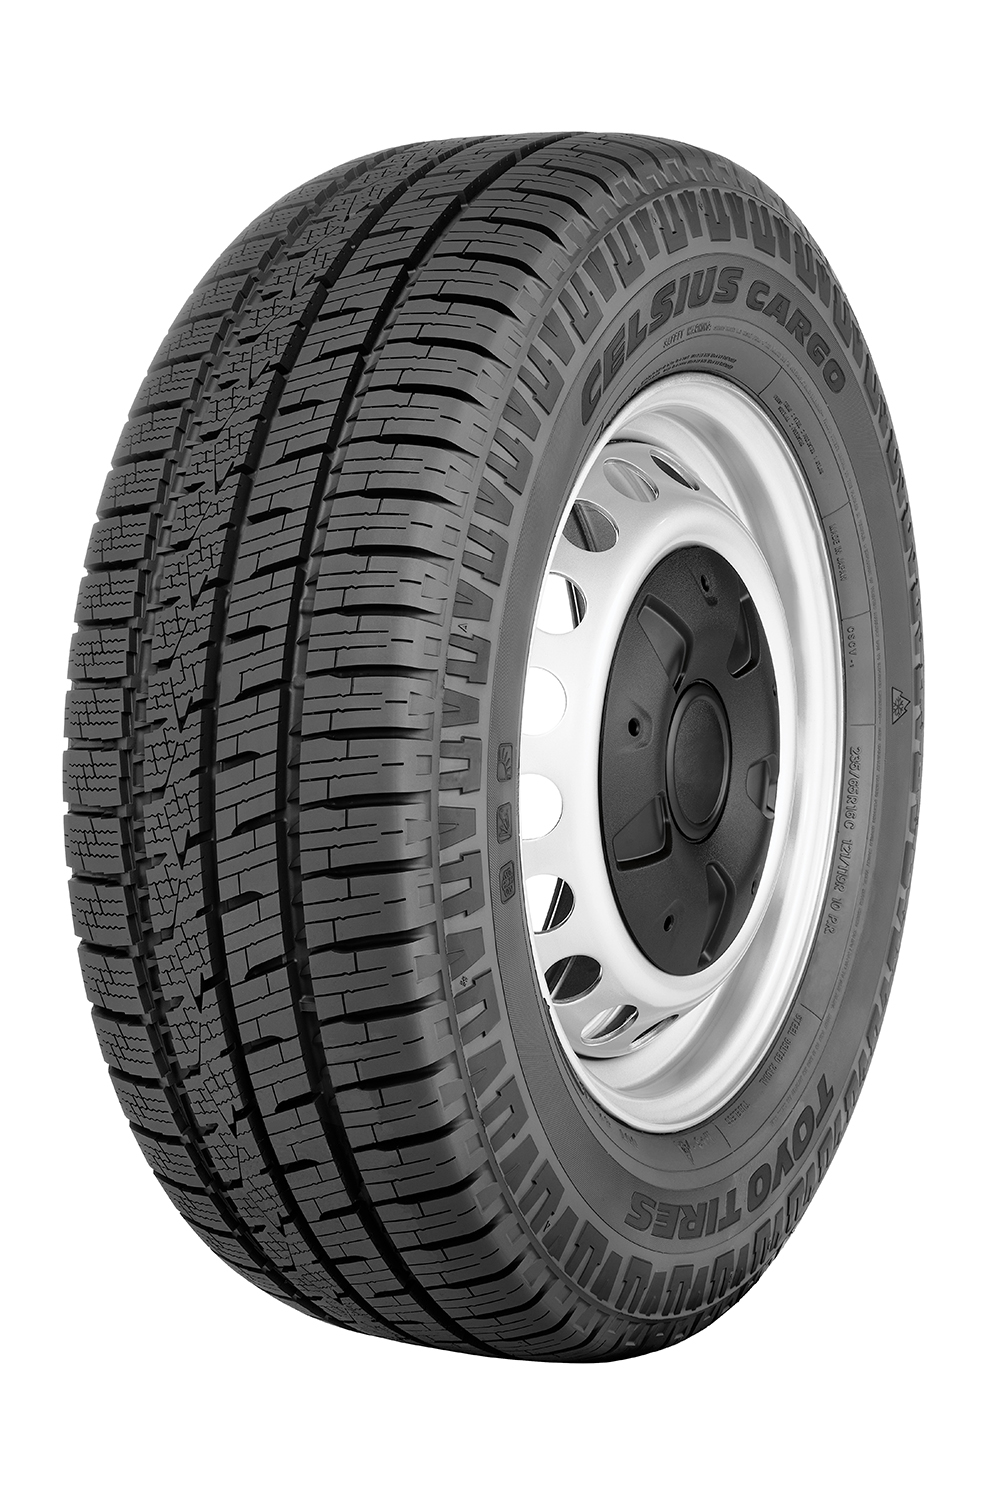 Toyo Brings Celsius Tire to Commercial Delivery Vehicles